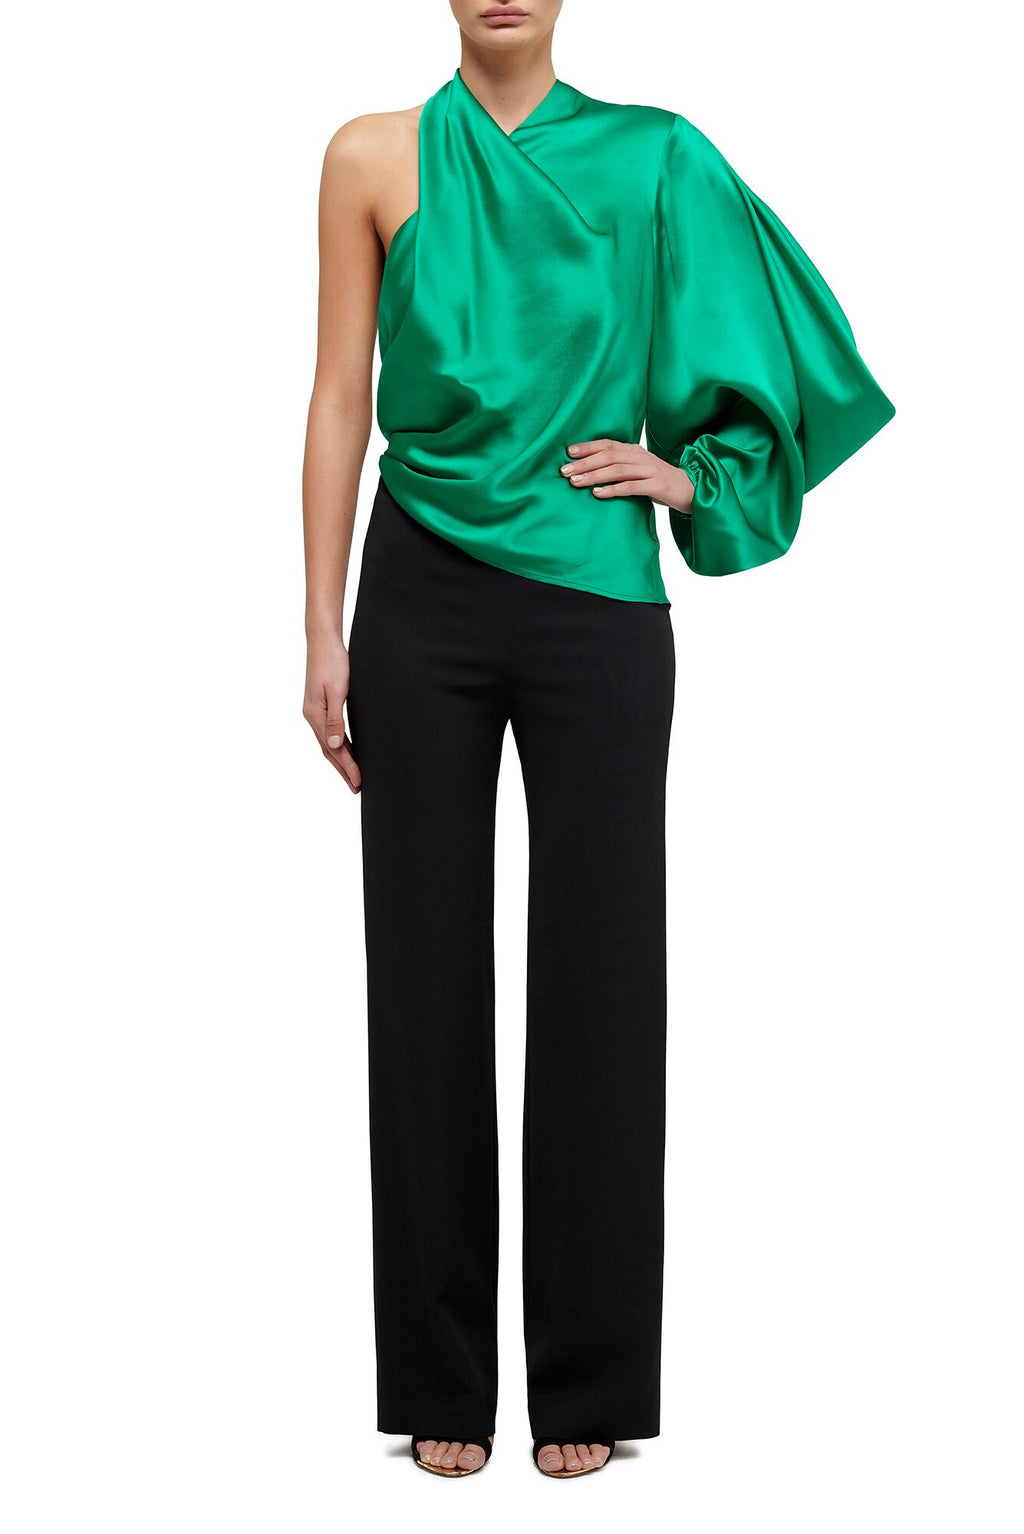 Attitude One Sleeve Top - Emerald Green